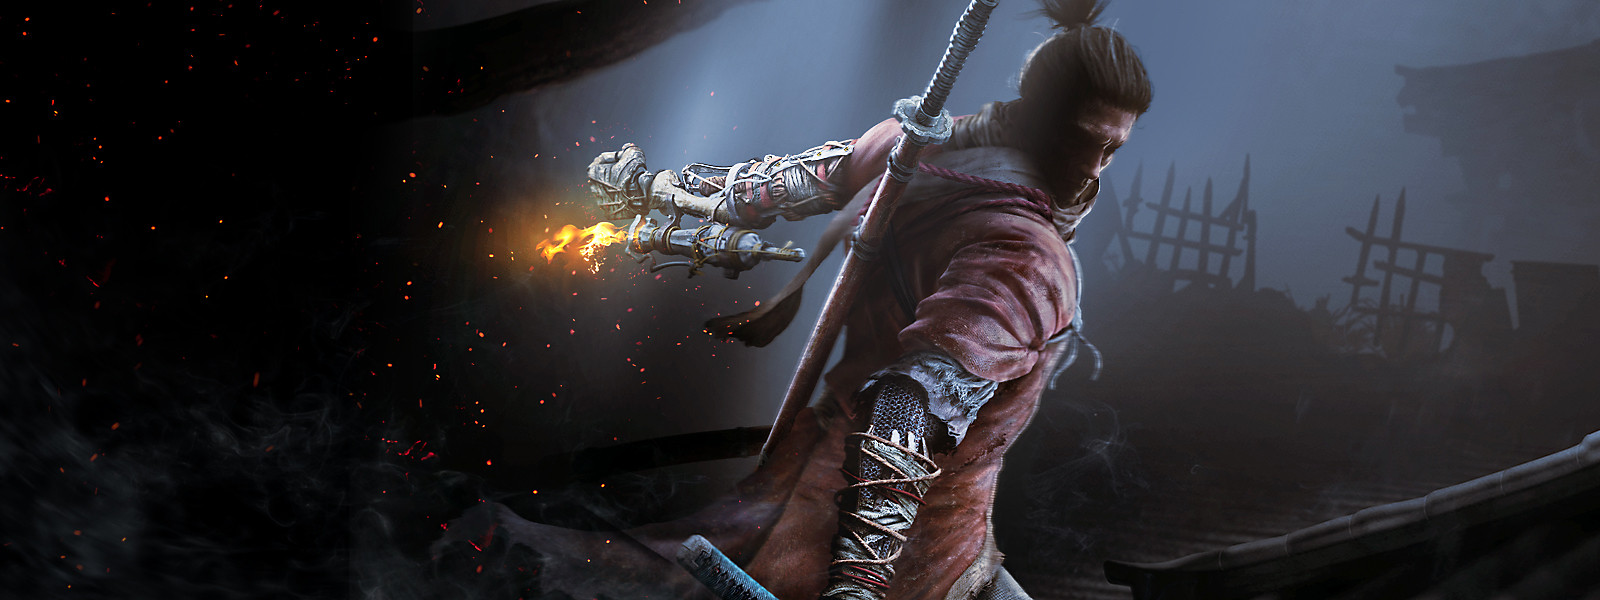 Sekiro Shadows Die Twice Wallpaper 4k Iphone Android And Desktop